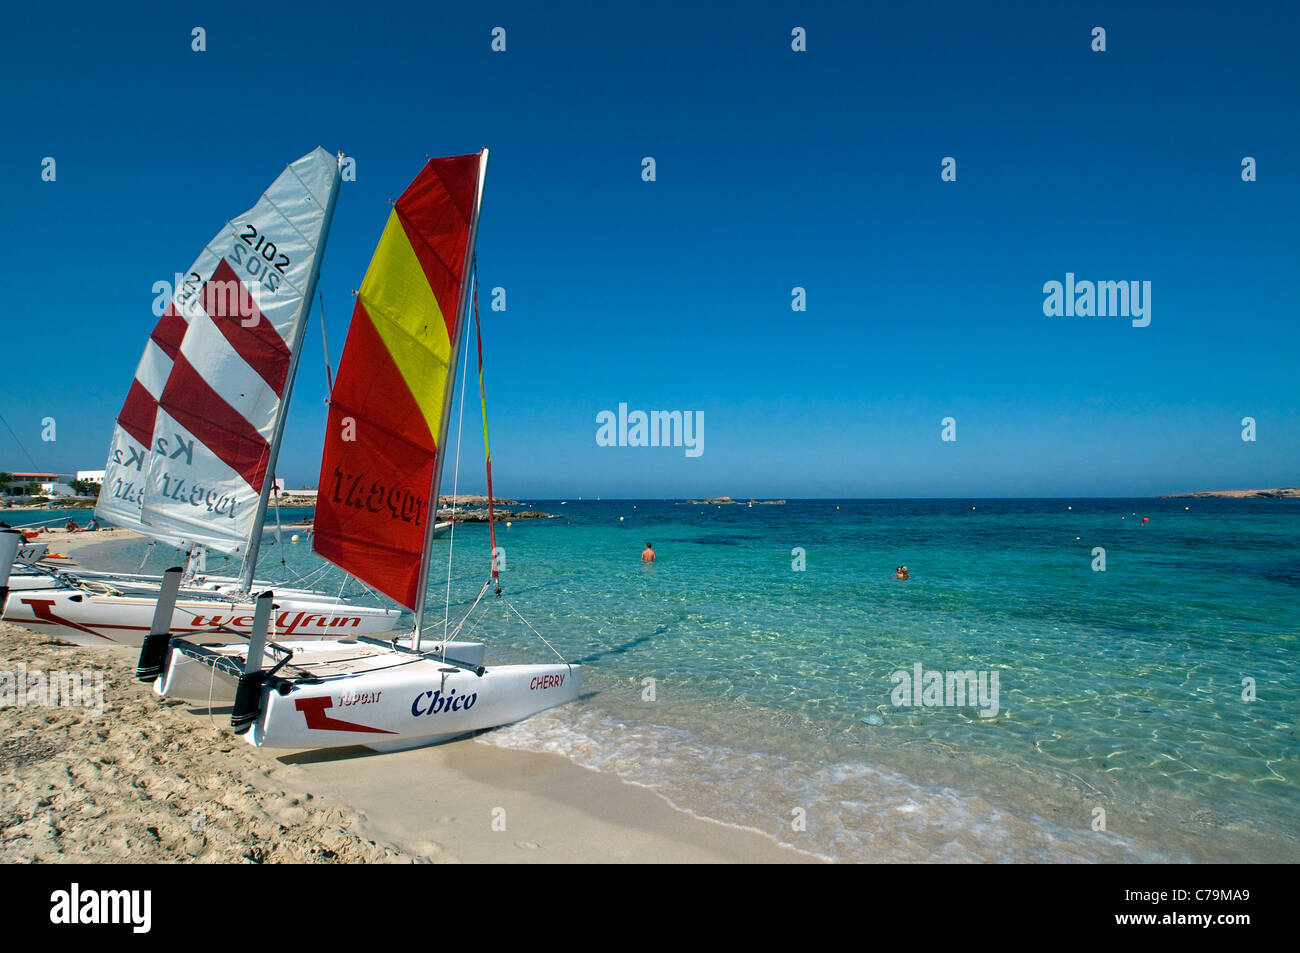 Watersports on Playa Es Pujol, Formentera, Balearics, Spain - Stock Image